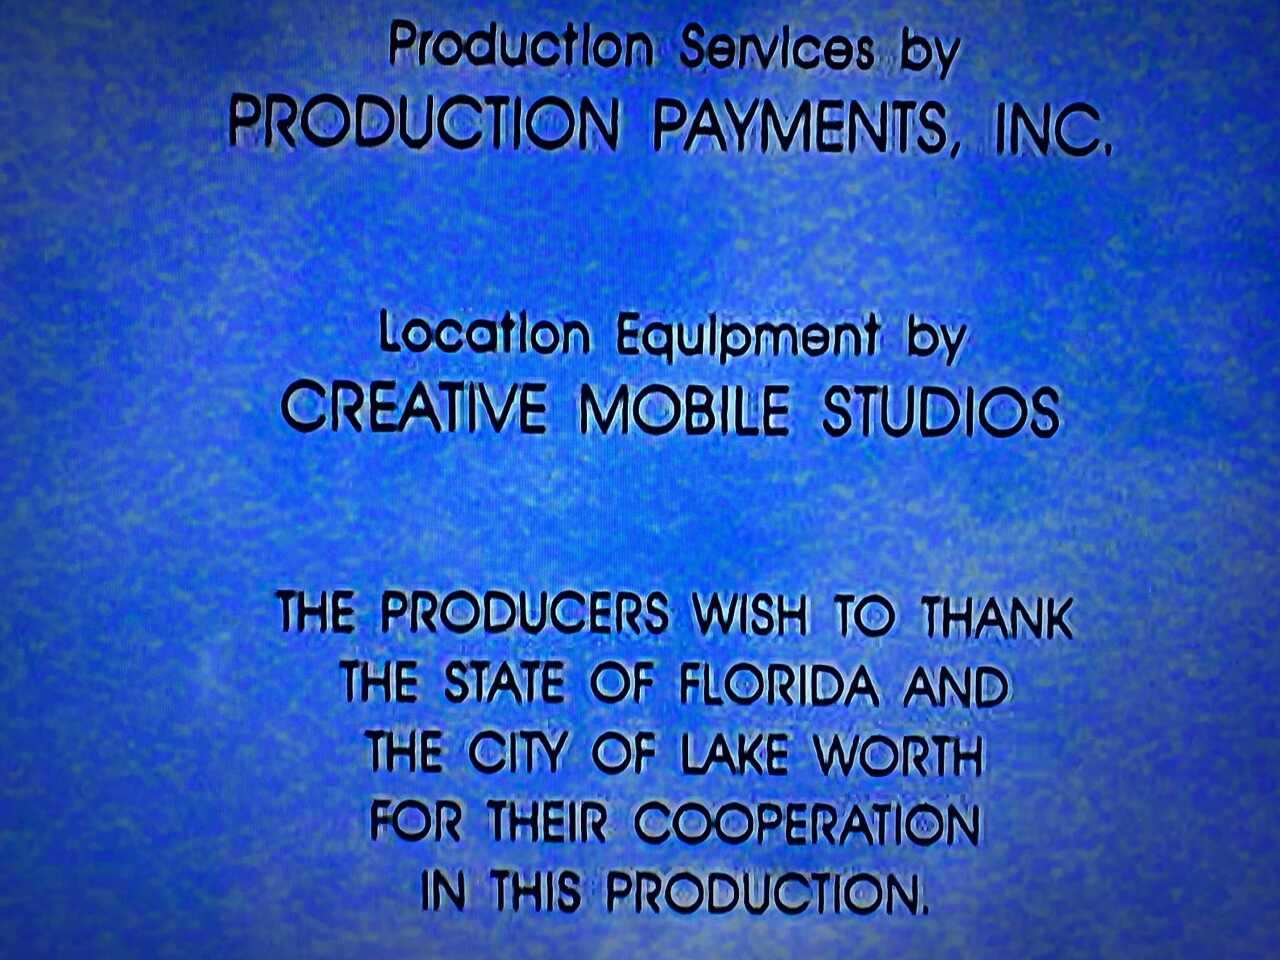 Lake Worth mentioned in credits to 'Body Heat'